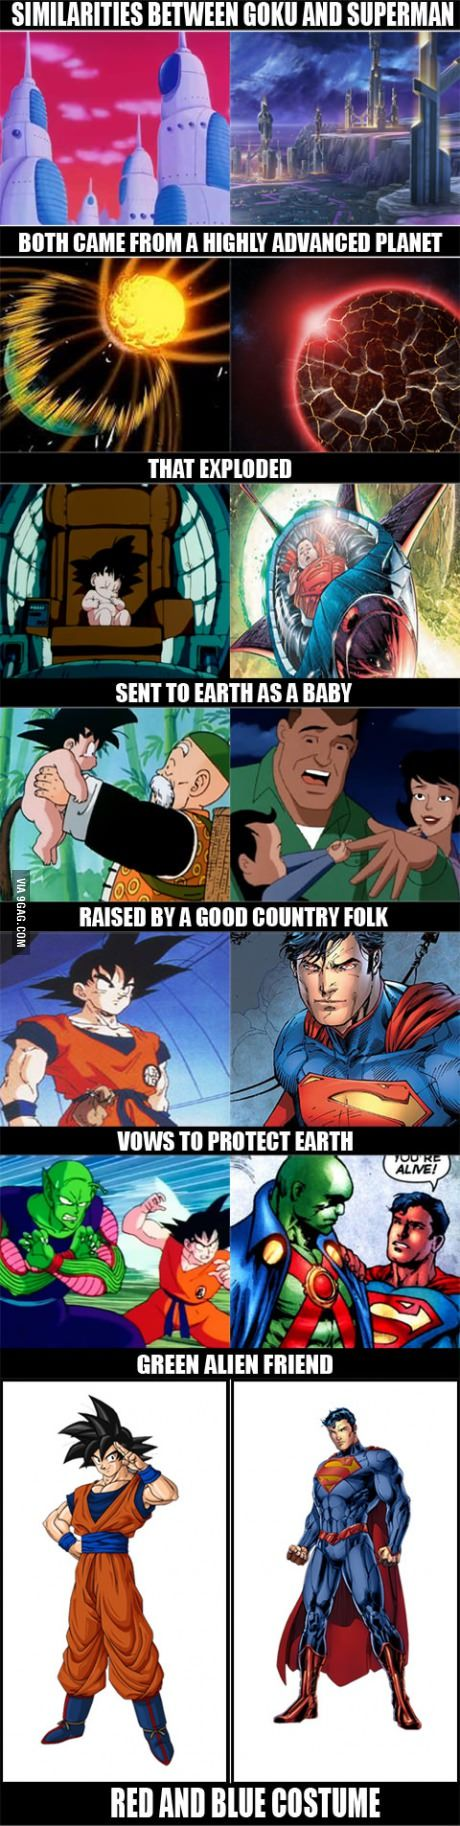 Gokus is more of an orange, but whatever :p